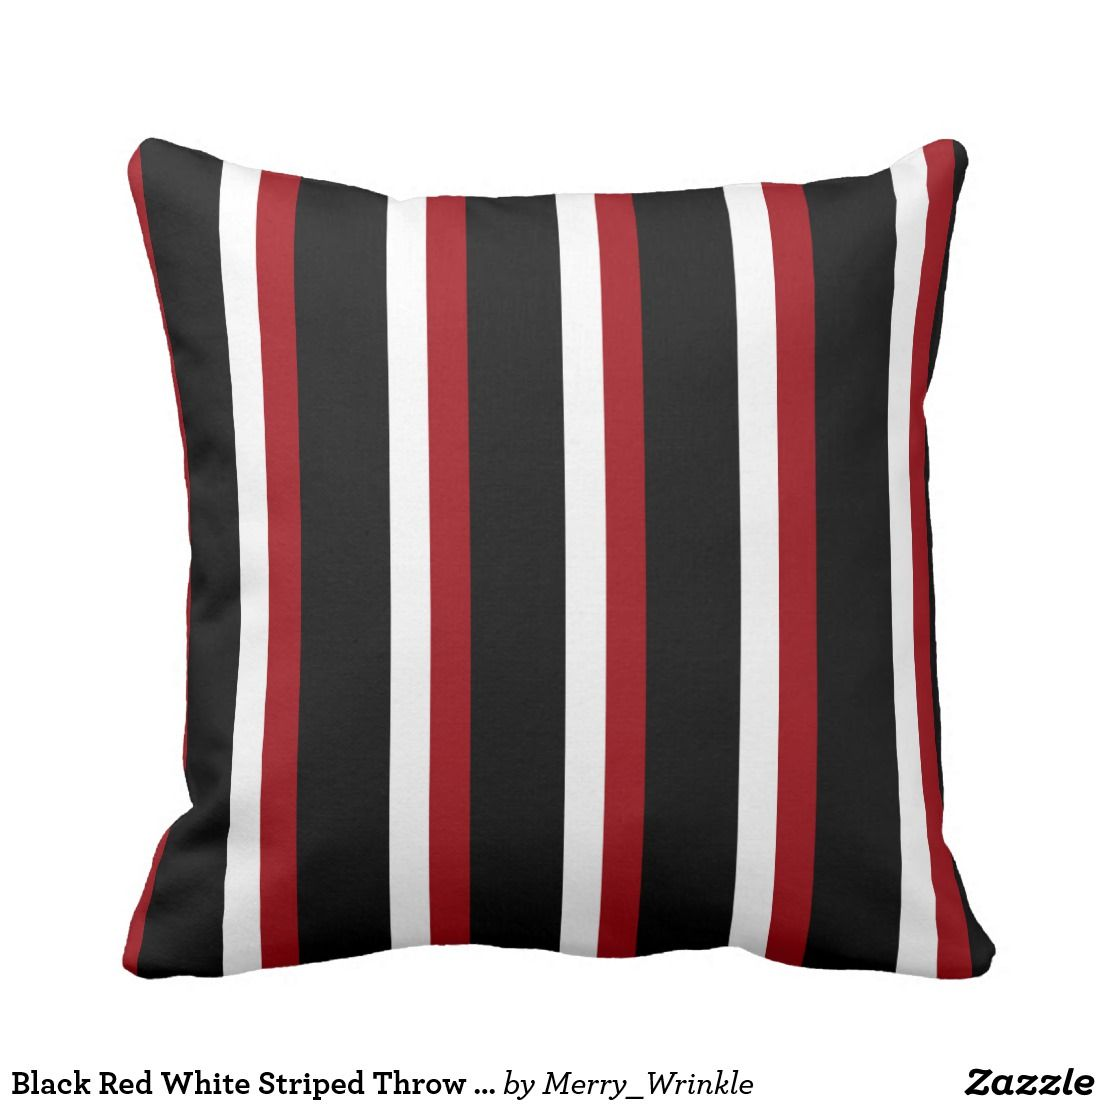 Black Red White Striped Throw Pillow Zazzle Com Stripe Throw Pillow Throw Pillows Striped Throw